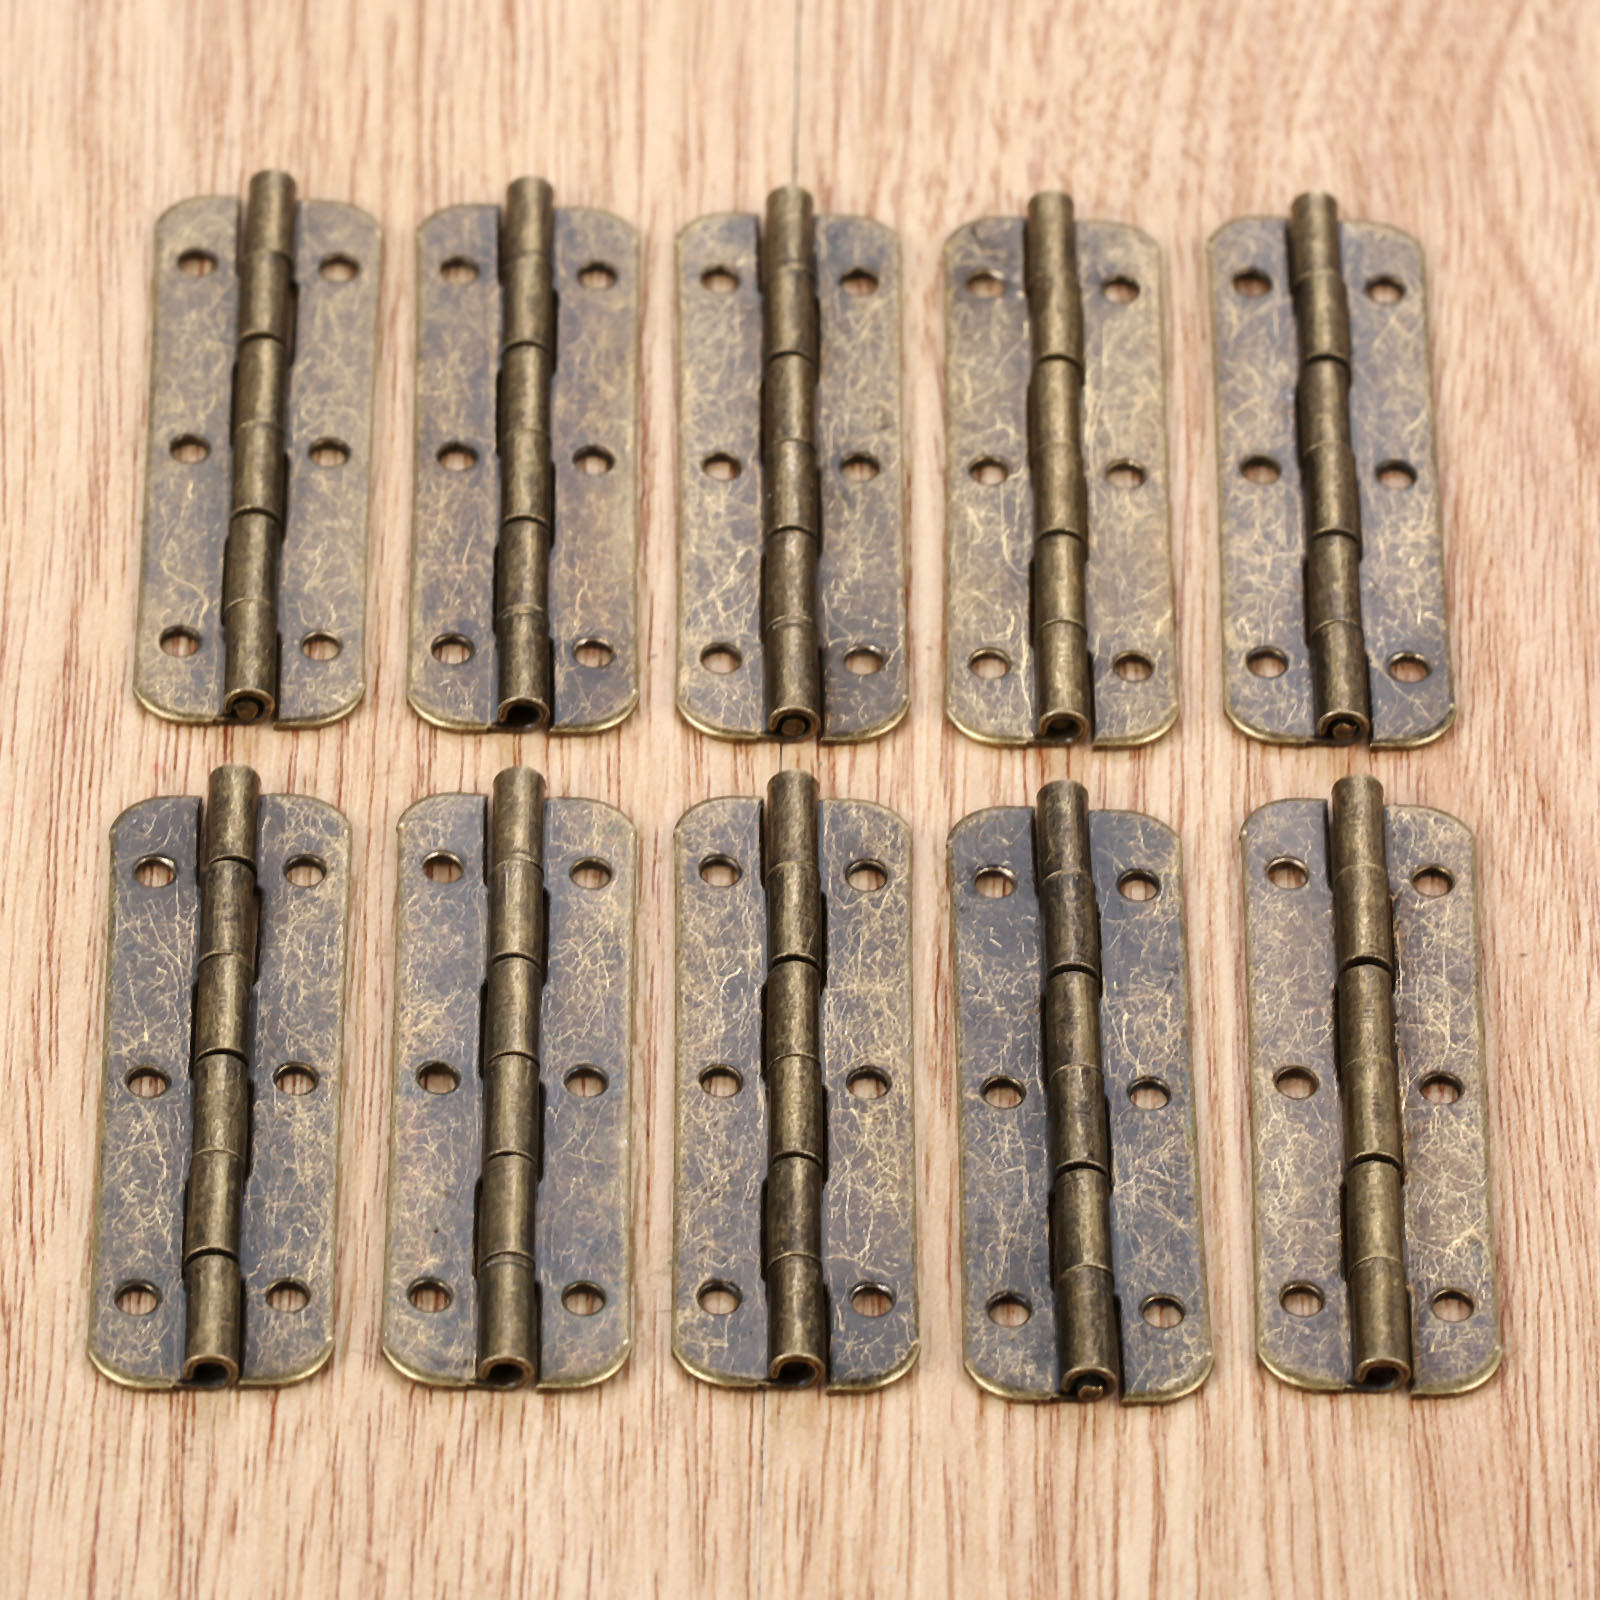 10Pcs Metal Cabinet Door Luggage Long Hinge Antique Vintage Bronze Tone6 Holes Decor Furniture Decoration Hardware